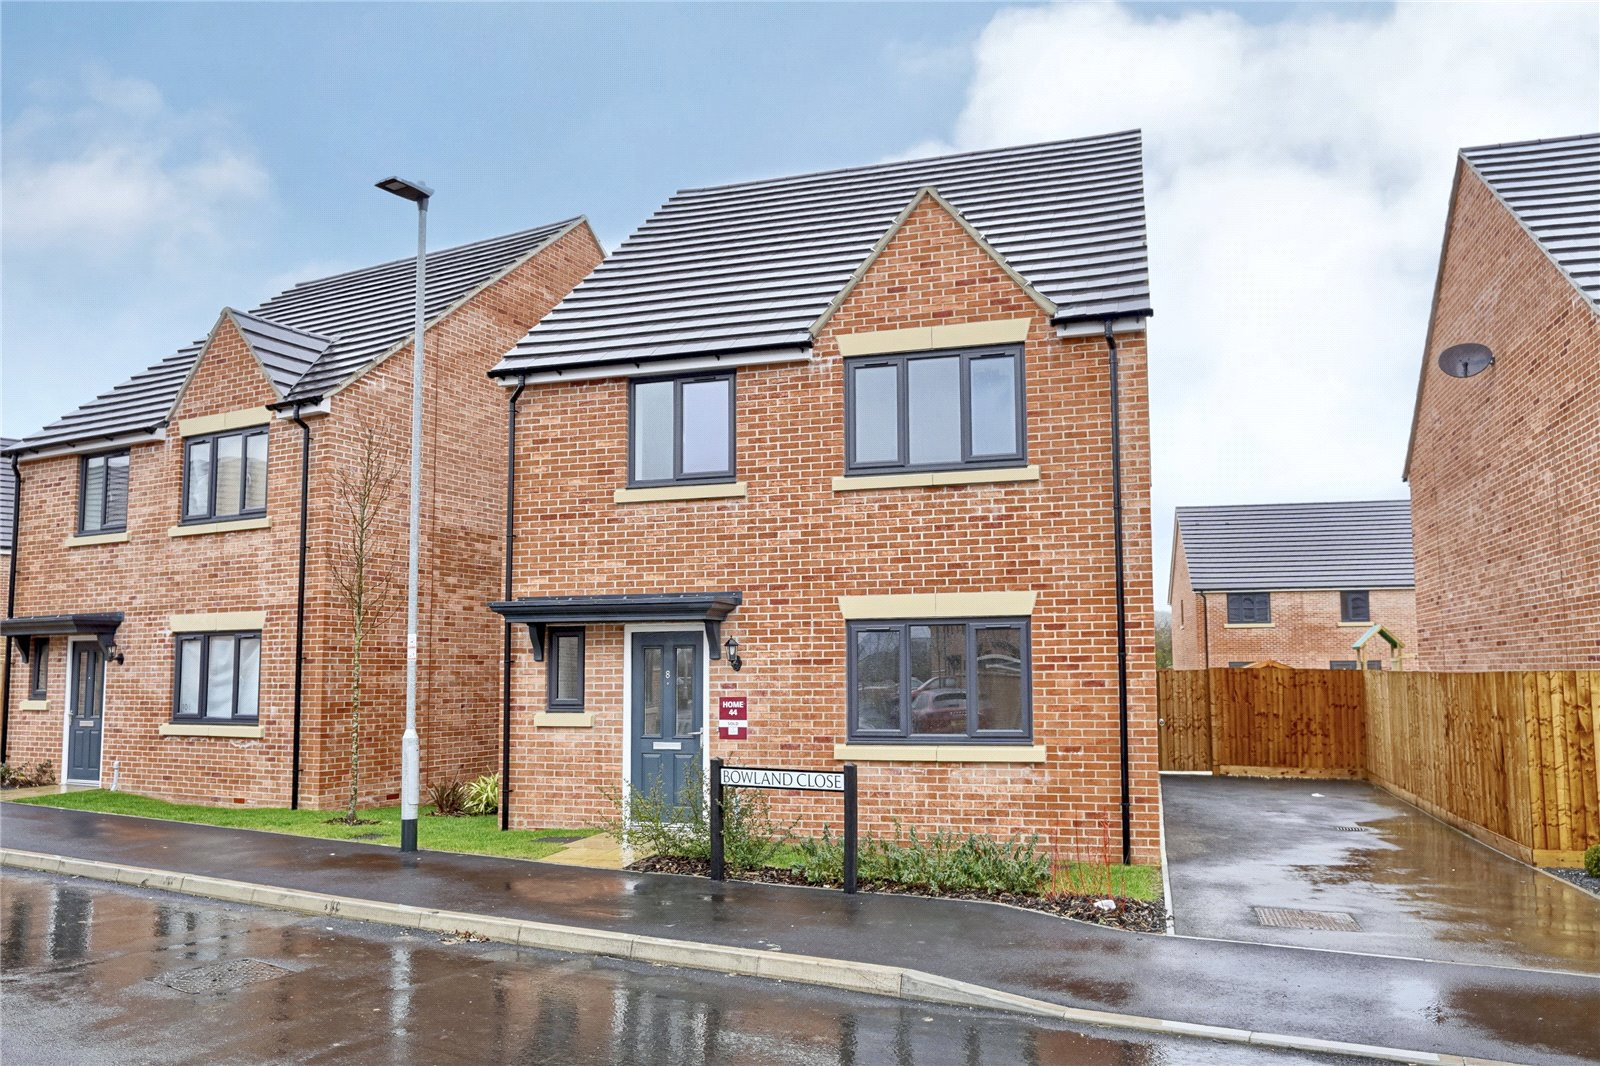 4 bed house for sale in Sawtry, PE28 5UJ - Property Image 1